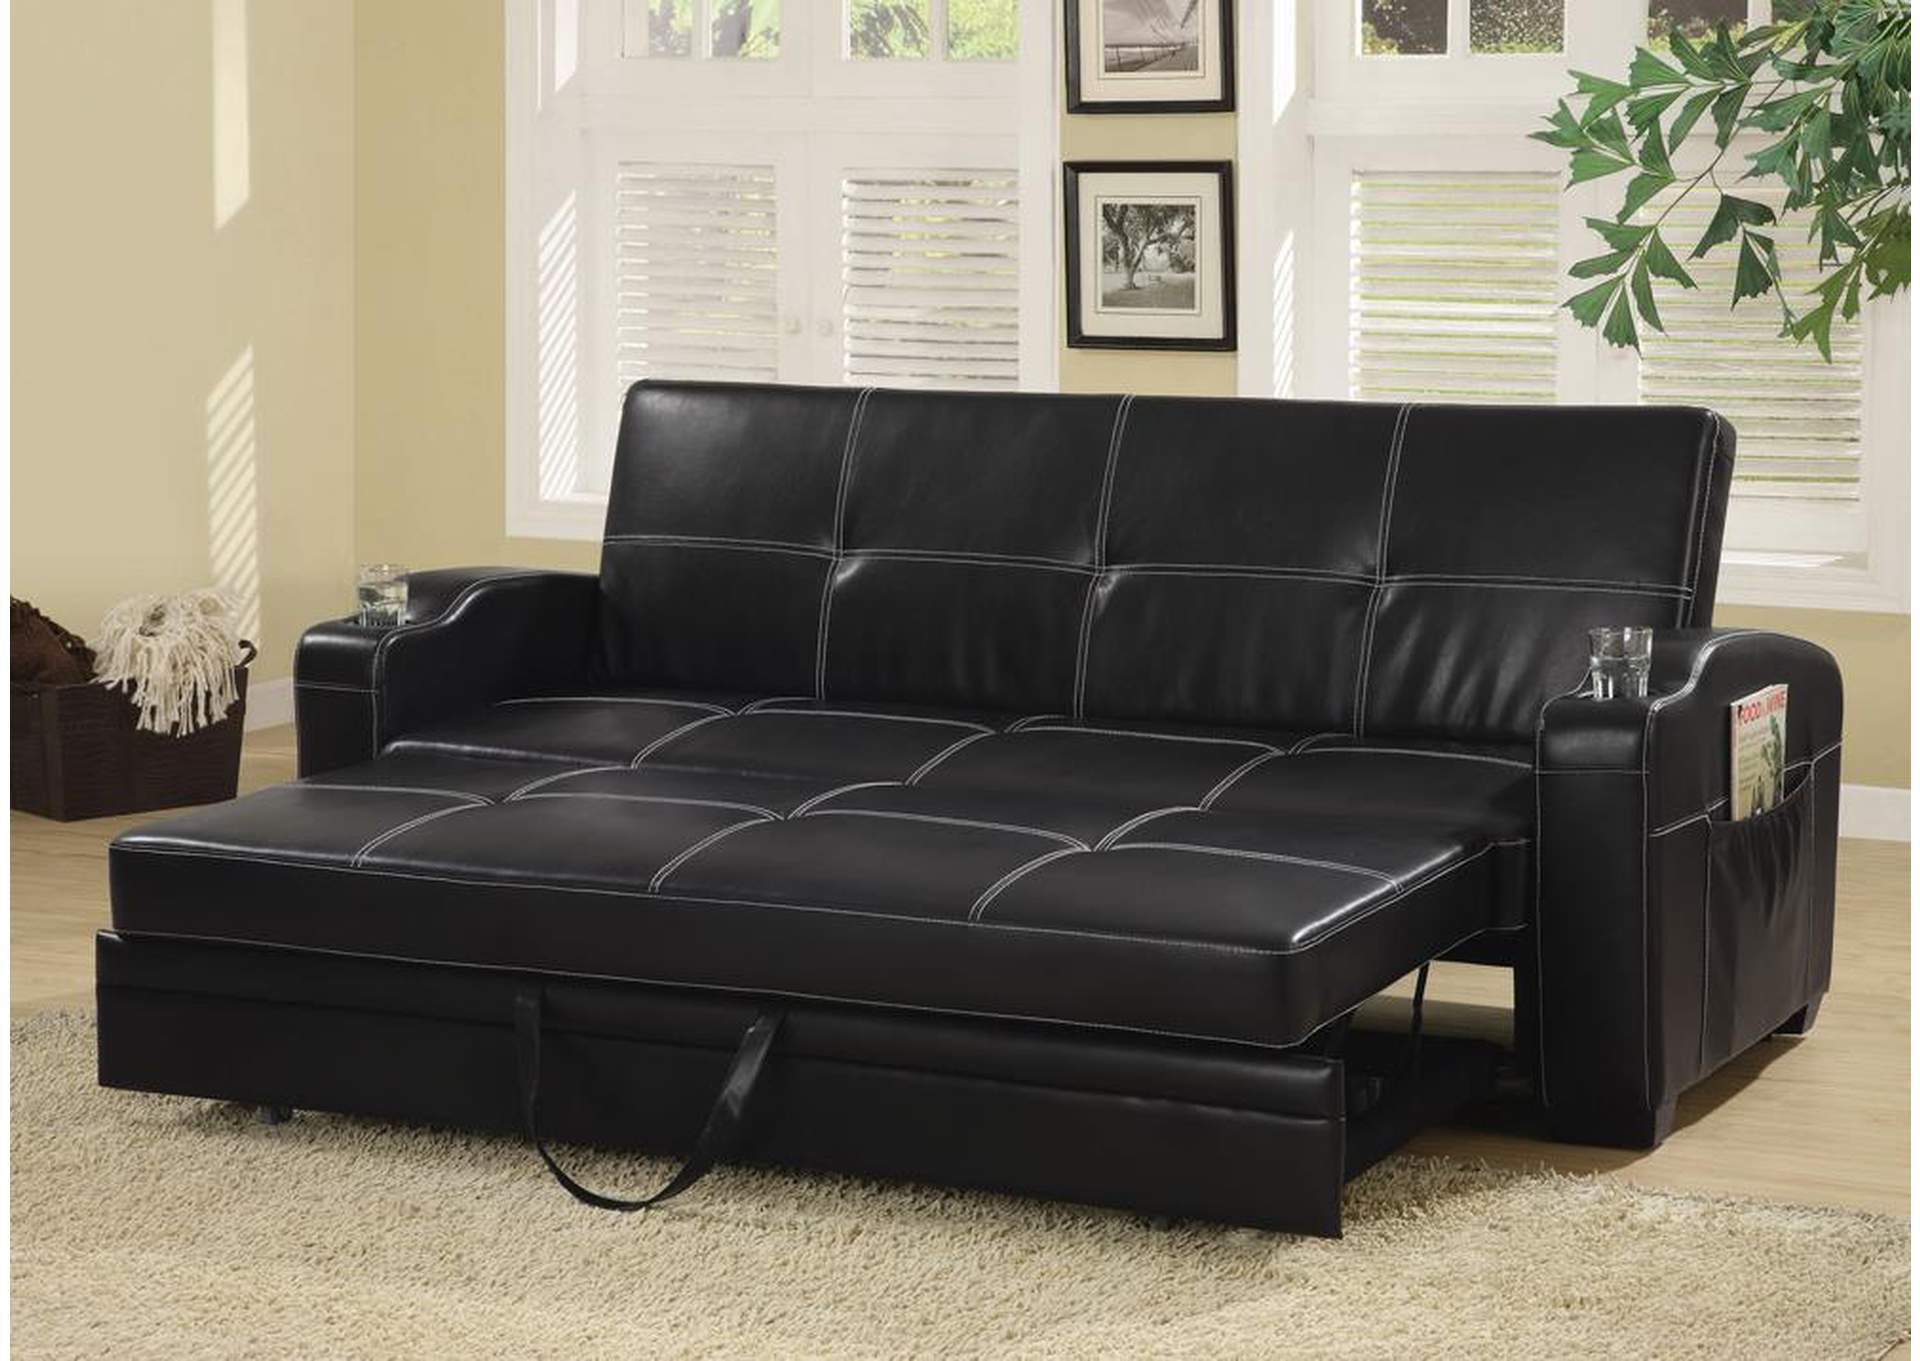 Sofa Beds Perth All Brands Furniture Edison Greenbrook North Brunswick Perth